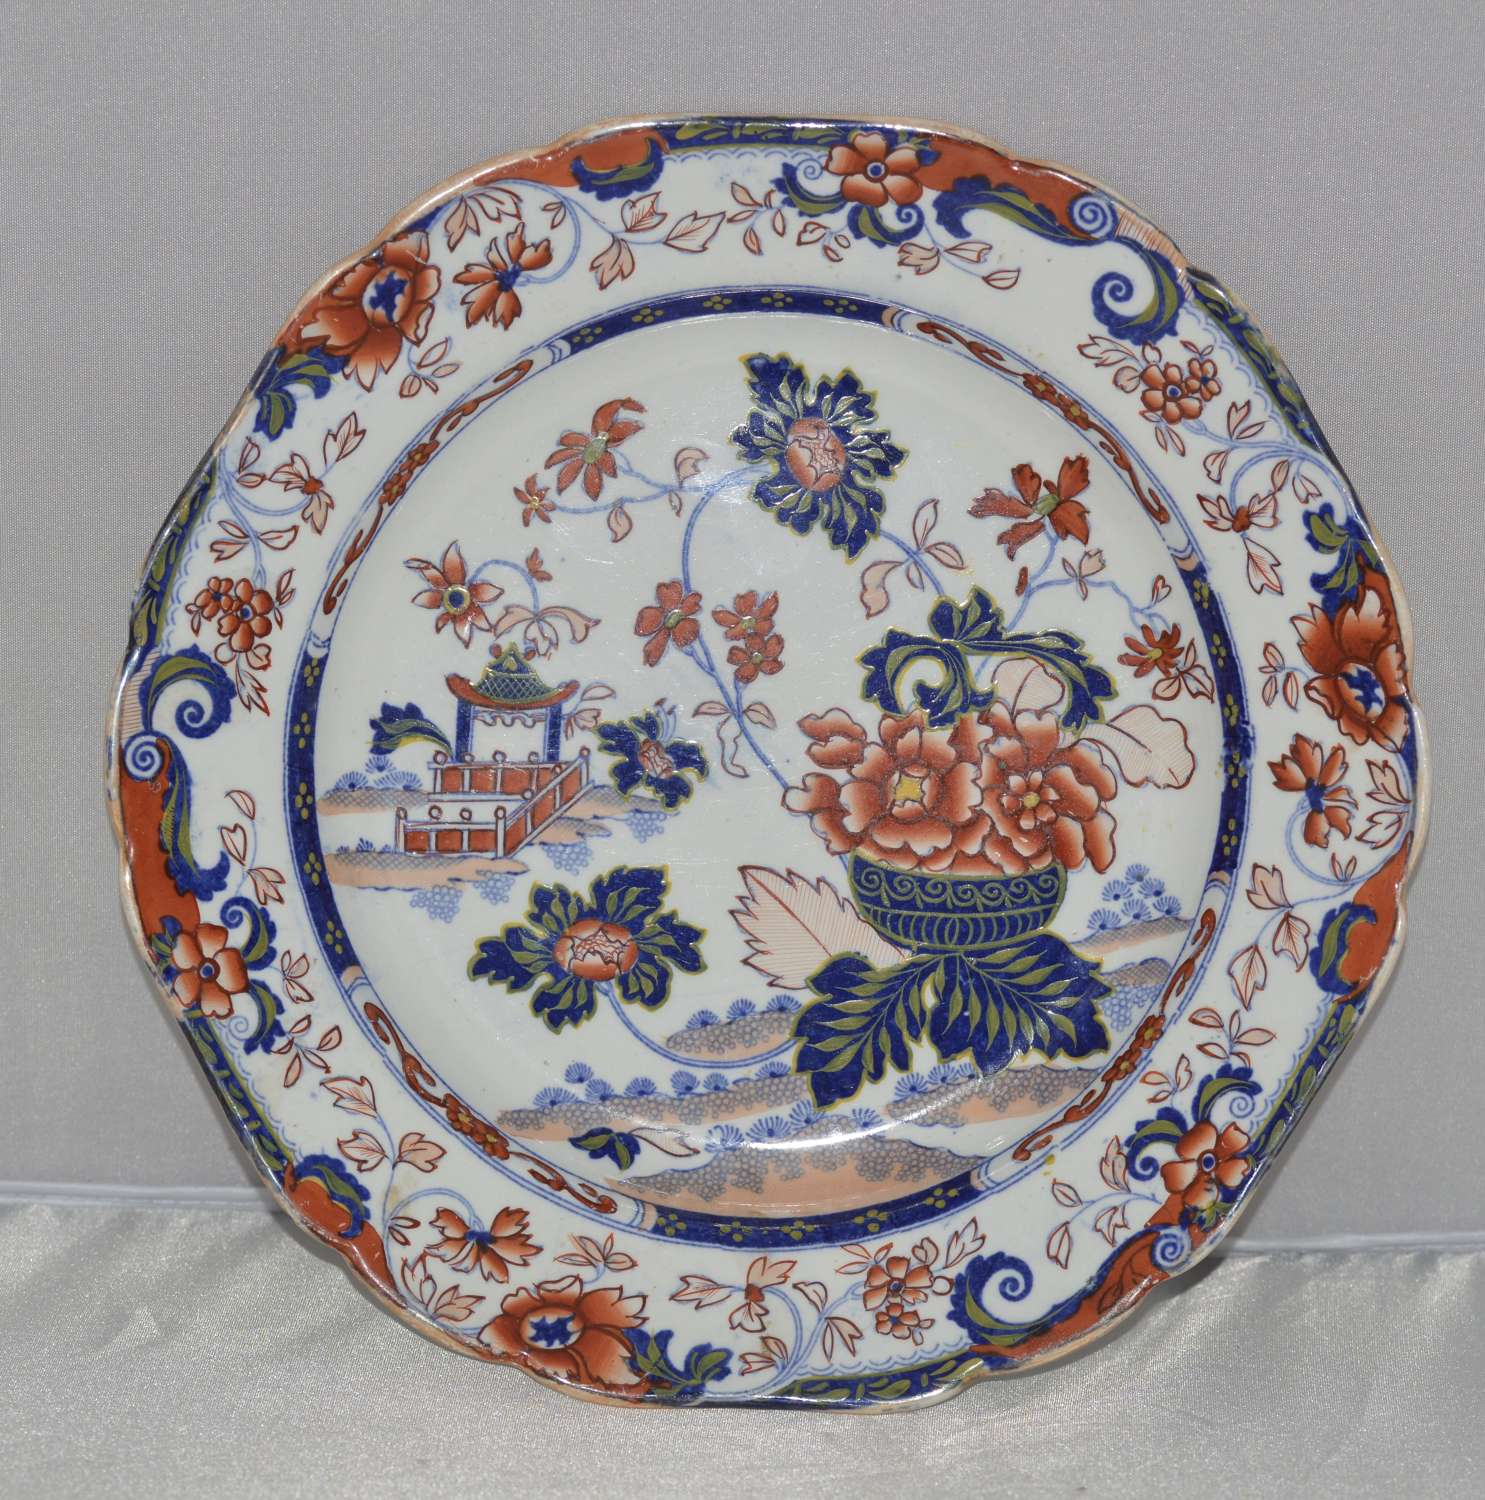 Victorian Amherst Japan Stone Ware Plate c1840